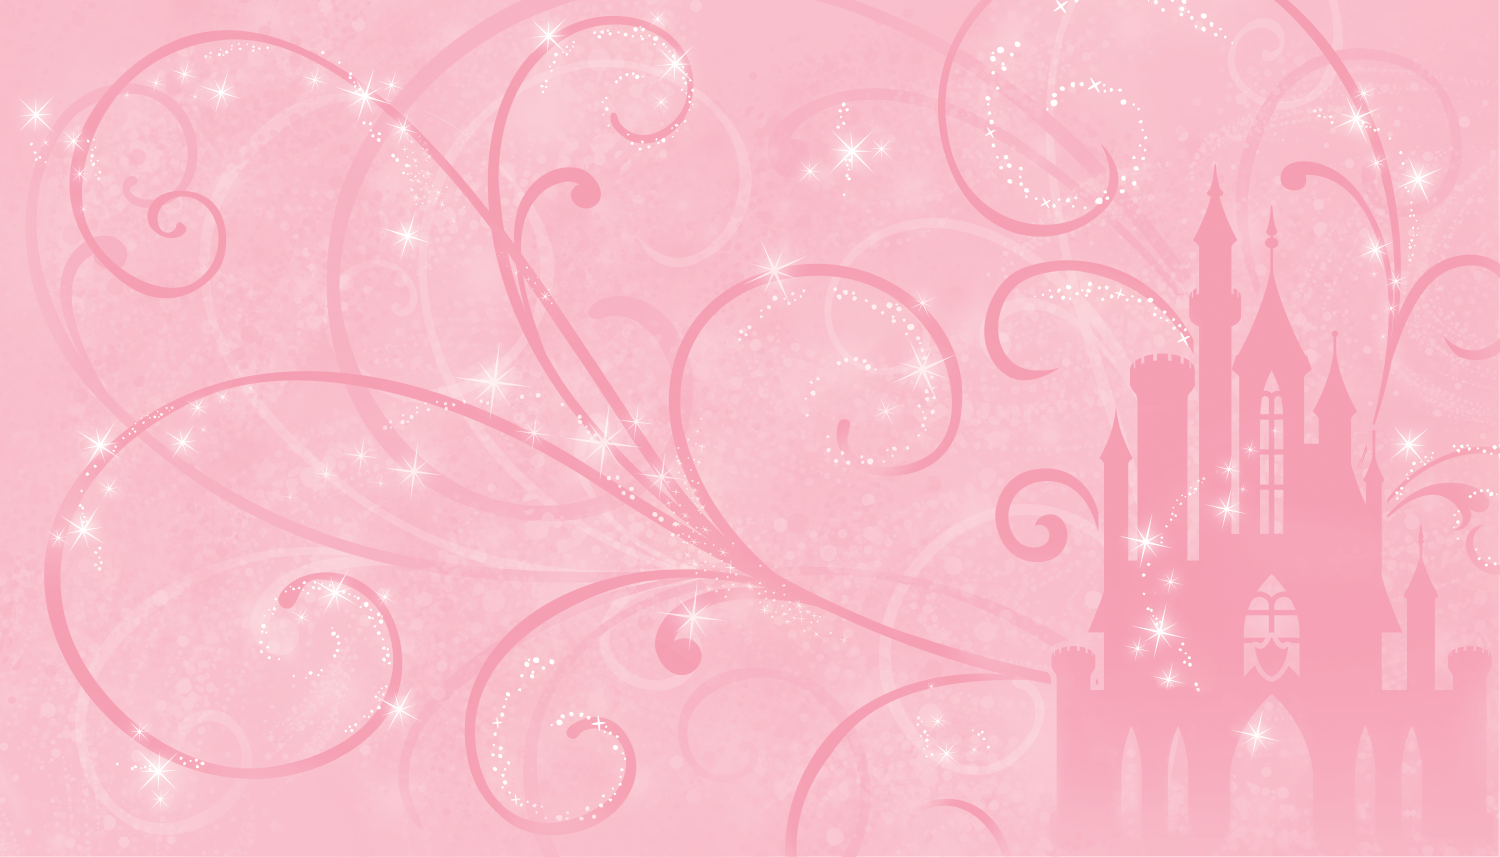 Princess Castle Wallpaper - WallpaperSafari